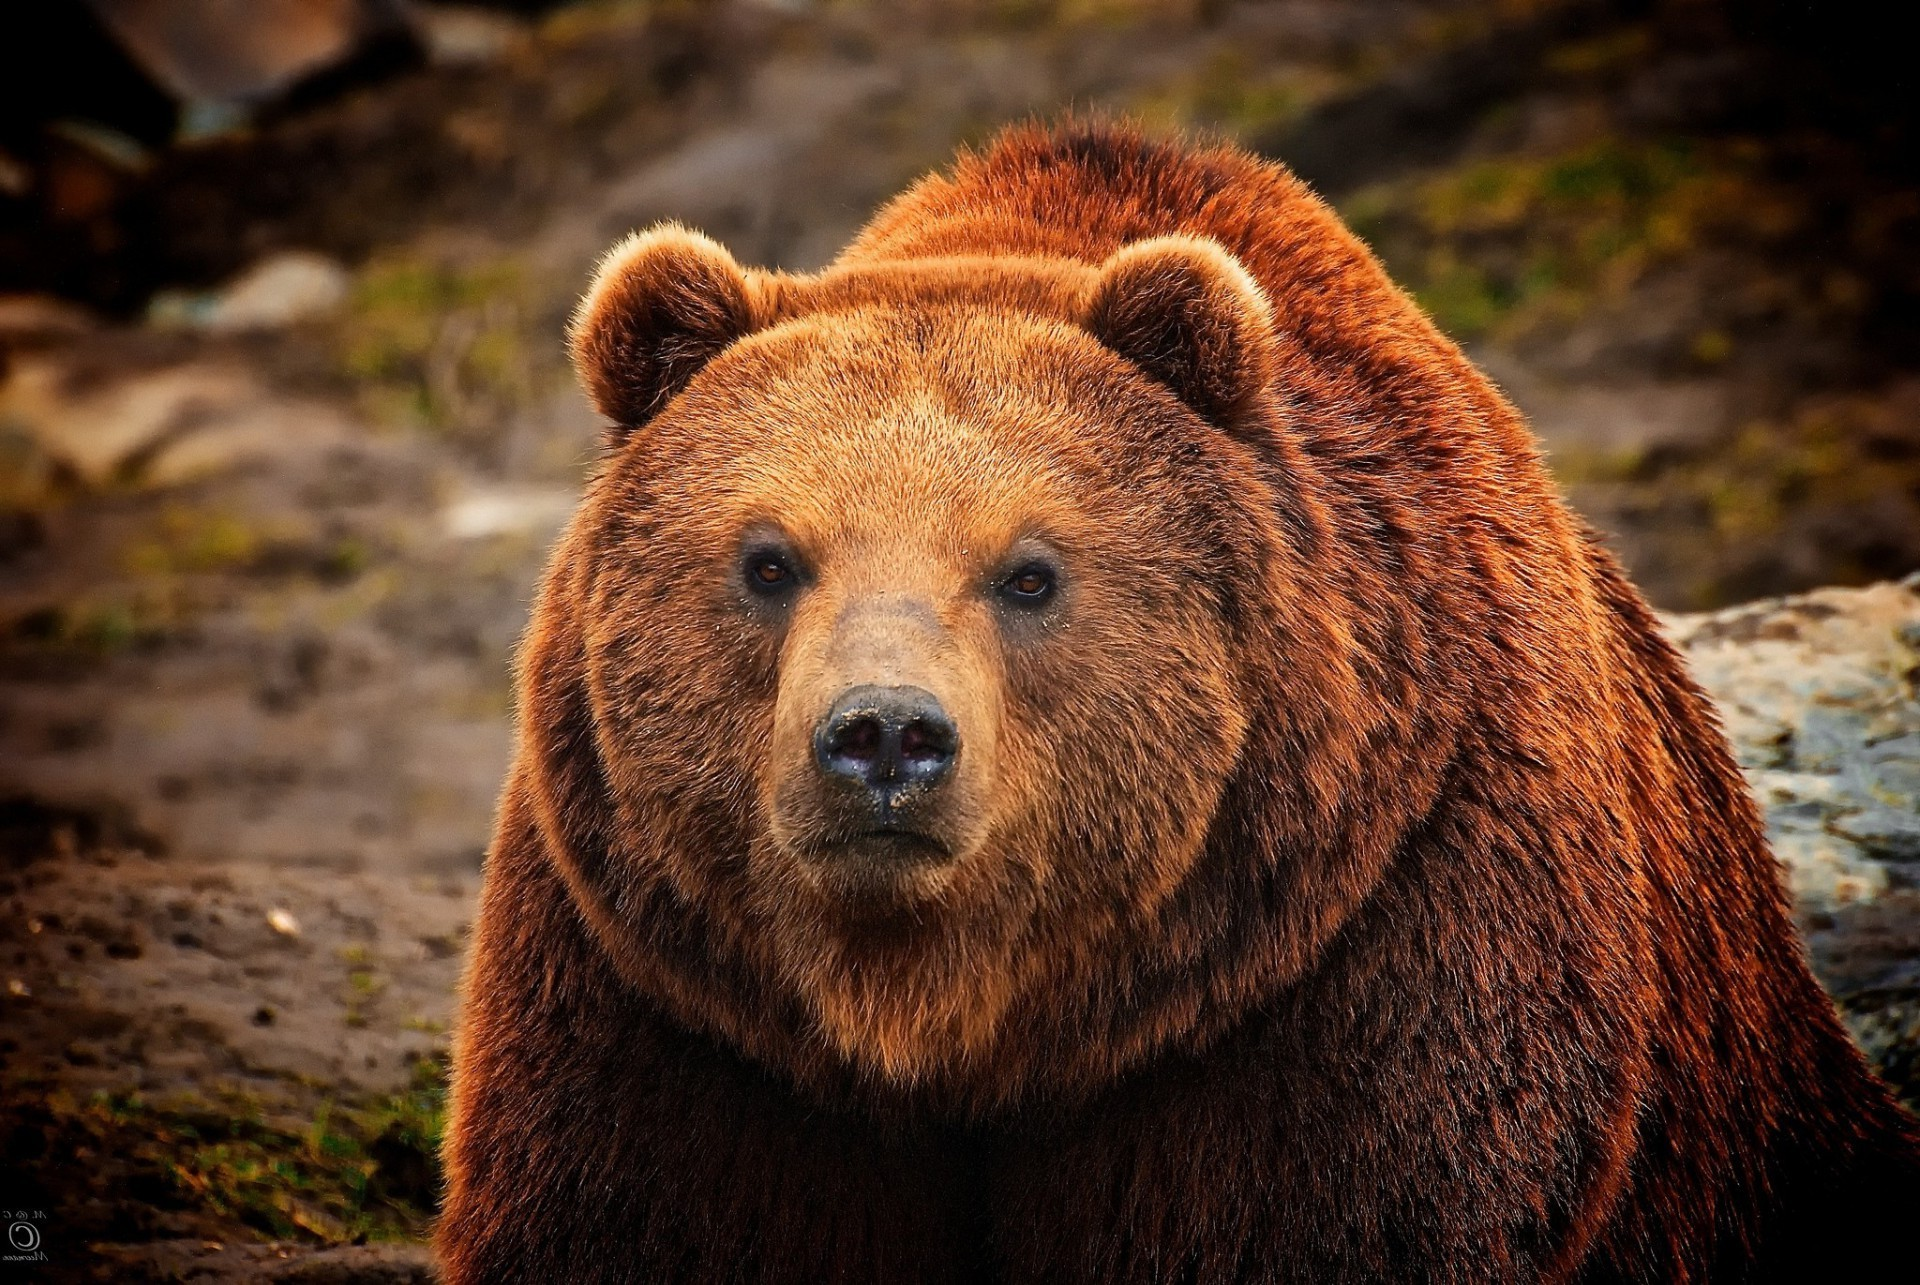 Brown bear watching gaze